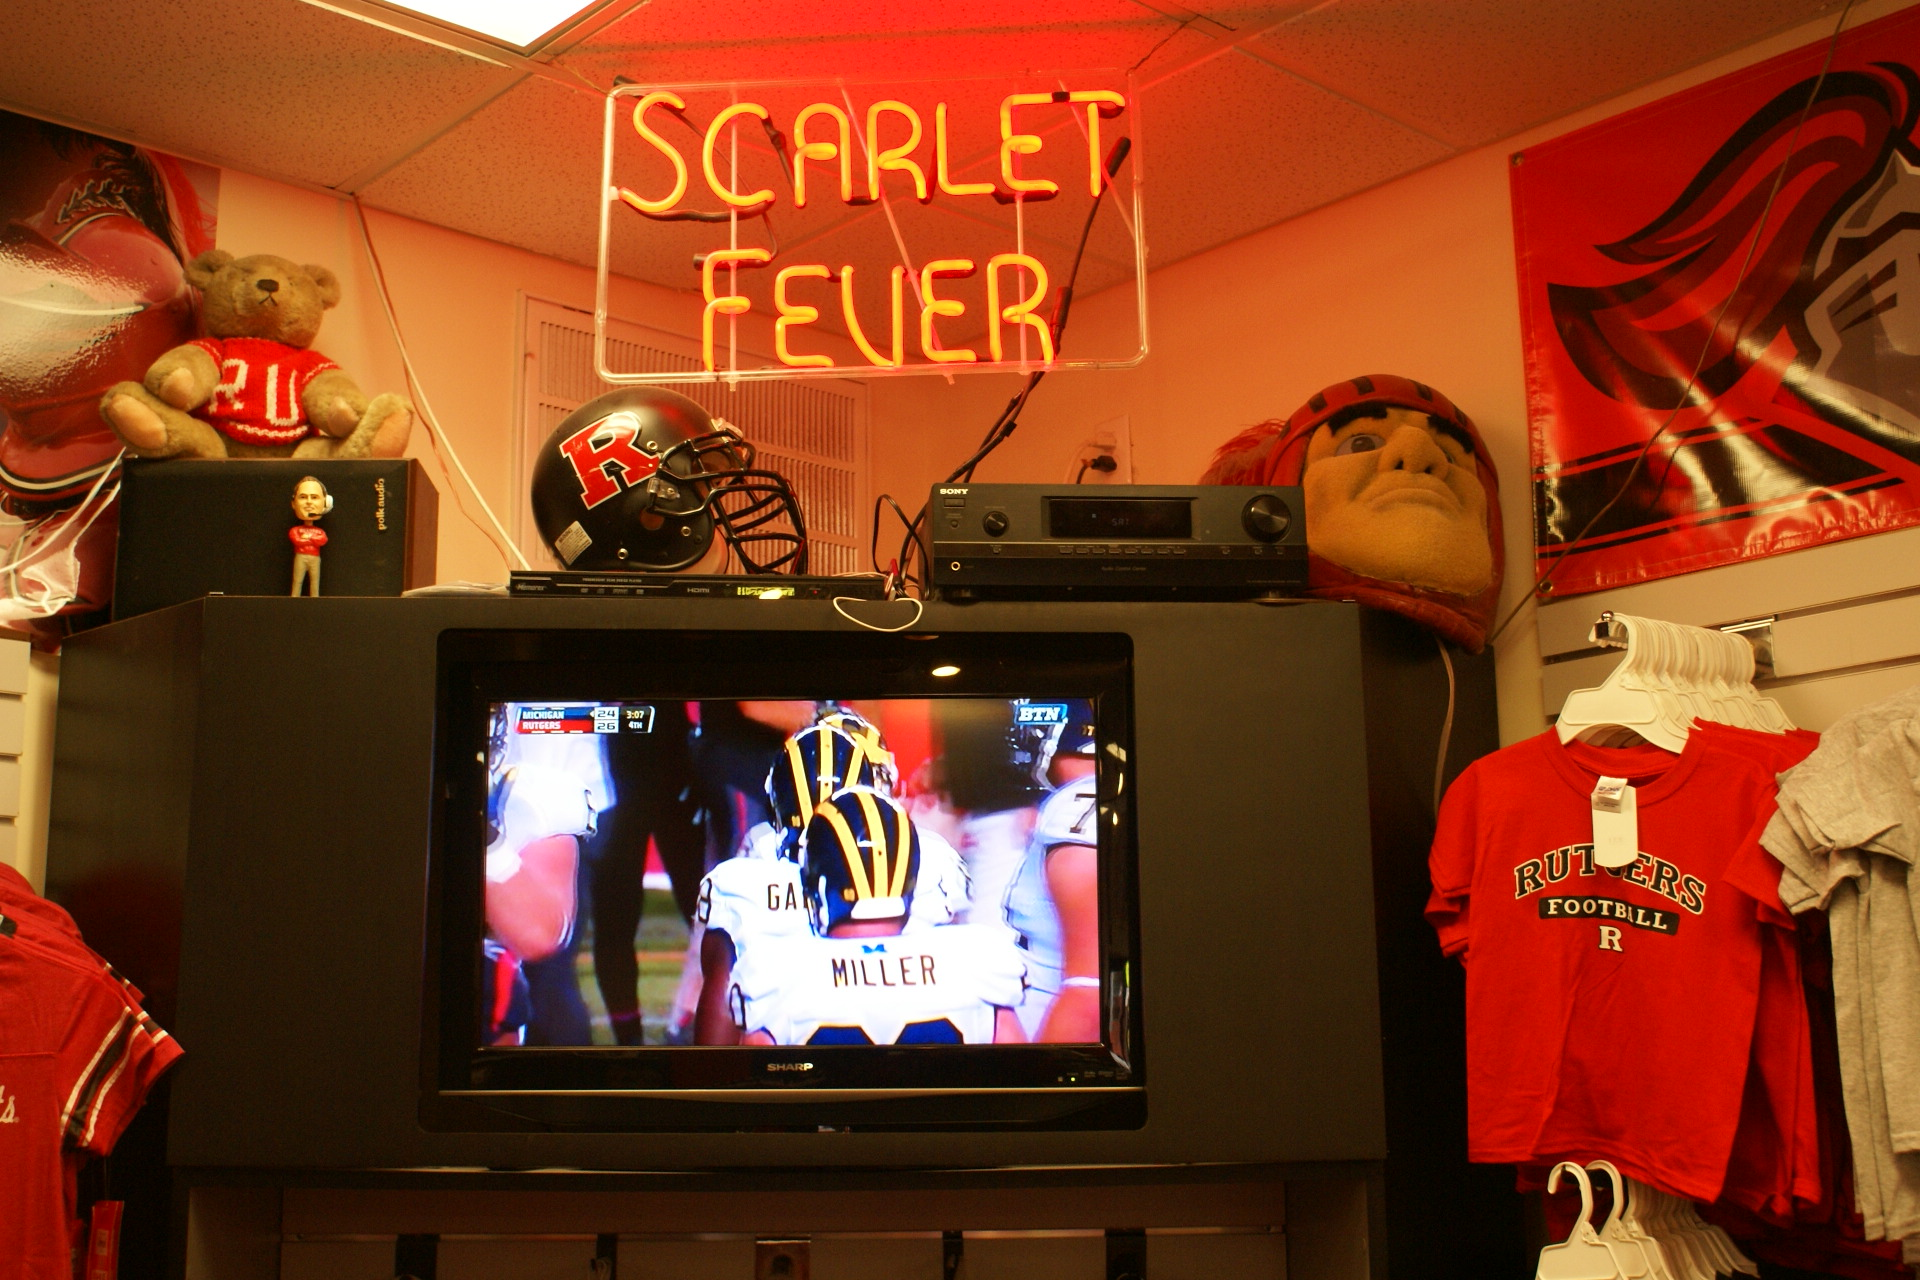 There's always a game on at Scarlet Fever....and Rutgers usually wins!